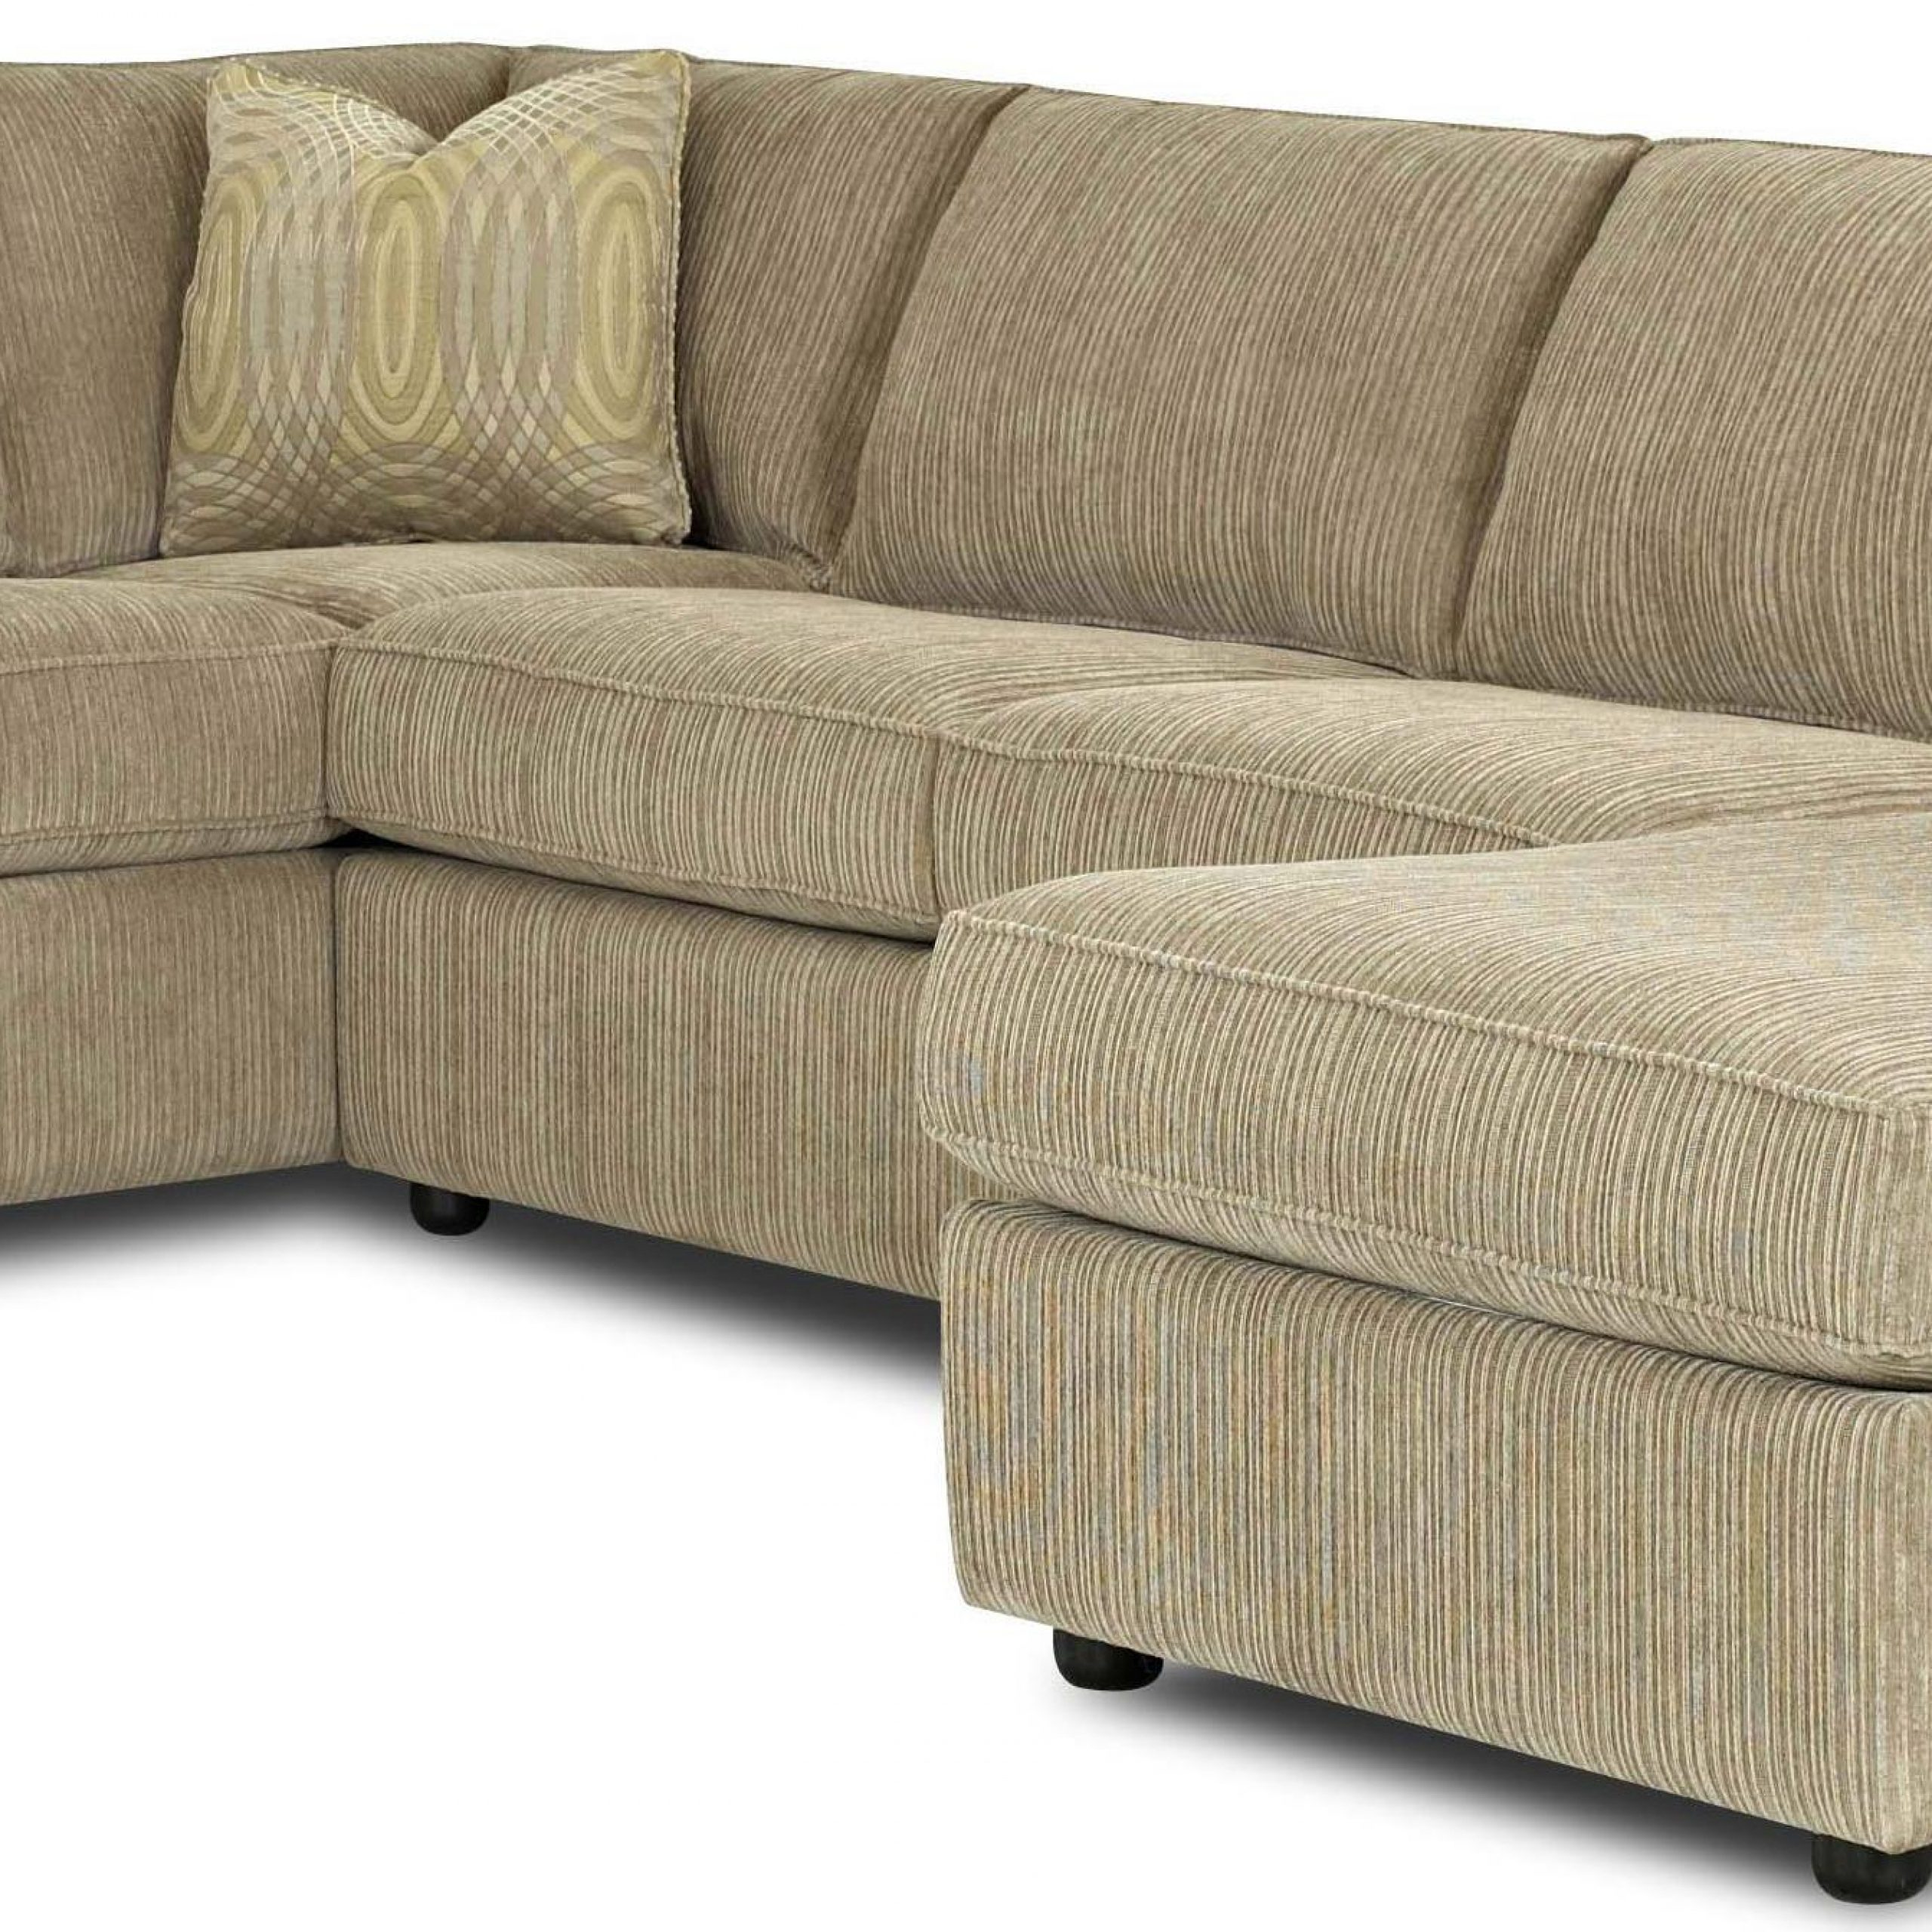 Latest Palisades Reclining Sectional Sofas With Left Storage Chaise Inside Transitional Sectional Sofa With Rolled Arms And Left (View 16 of 20)